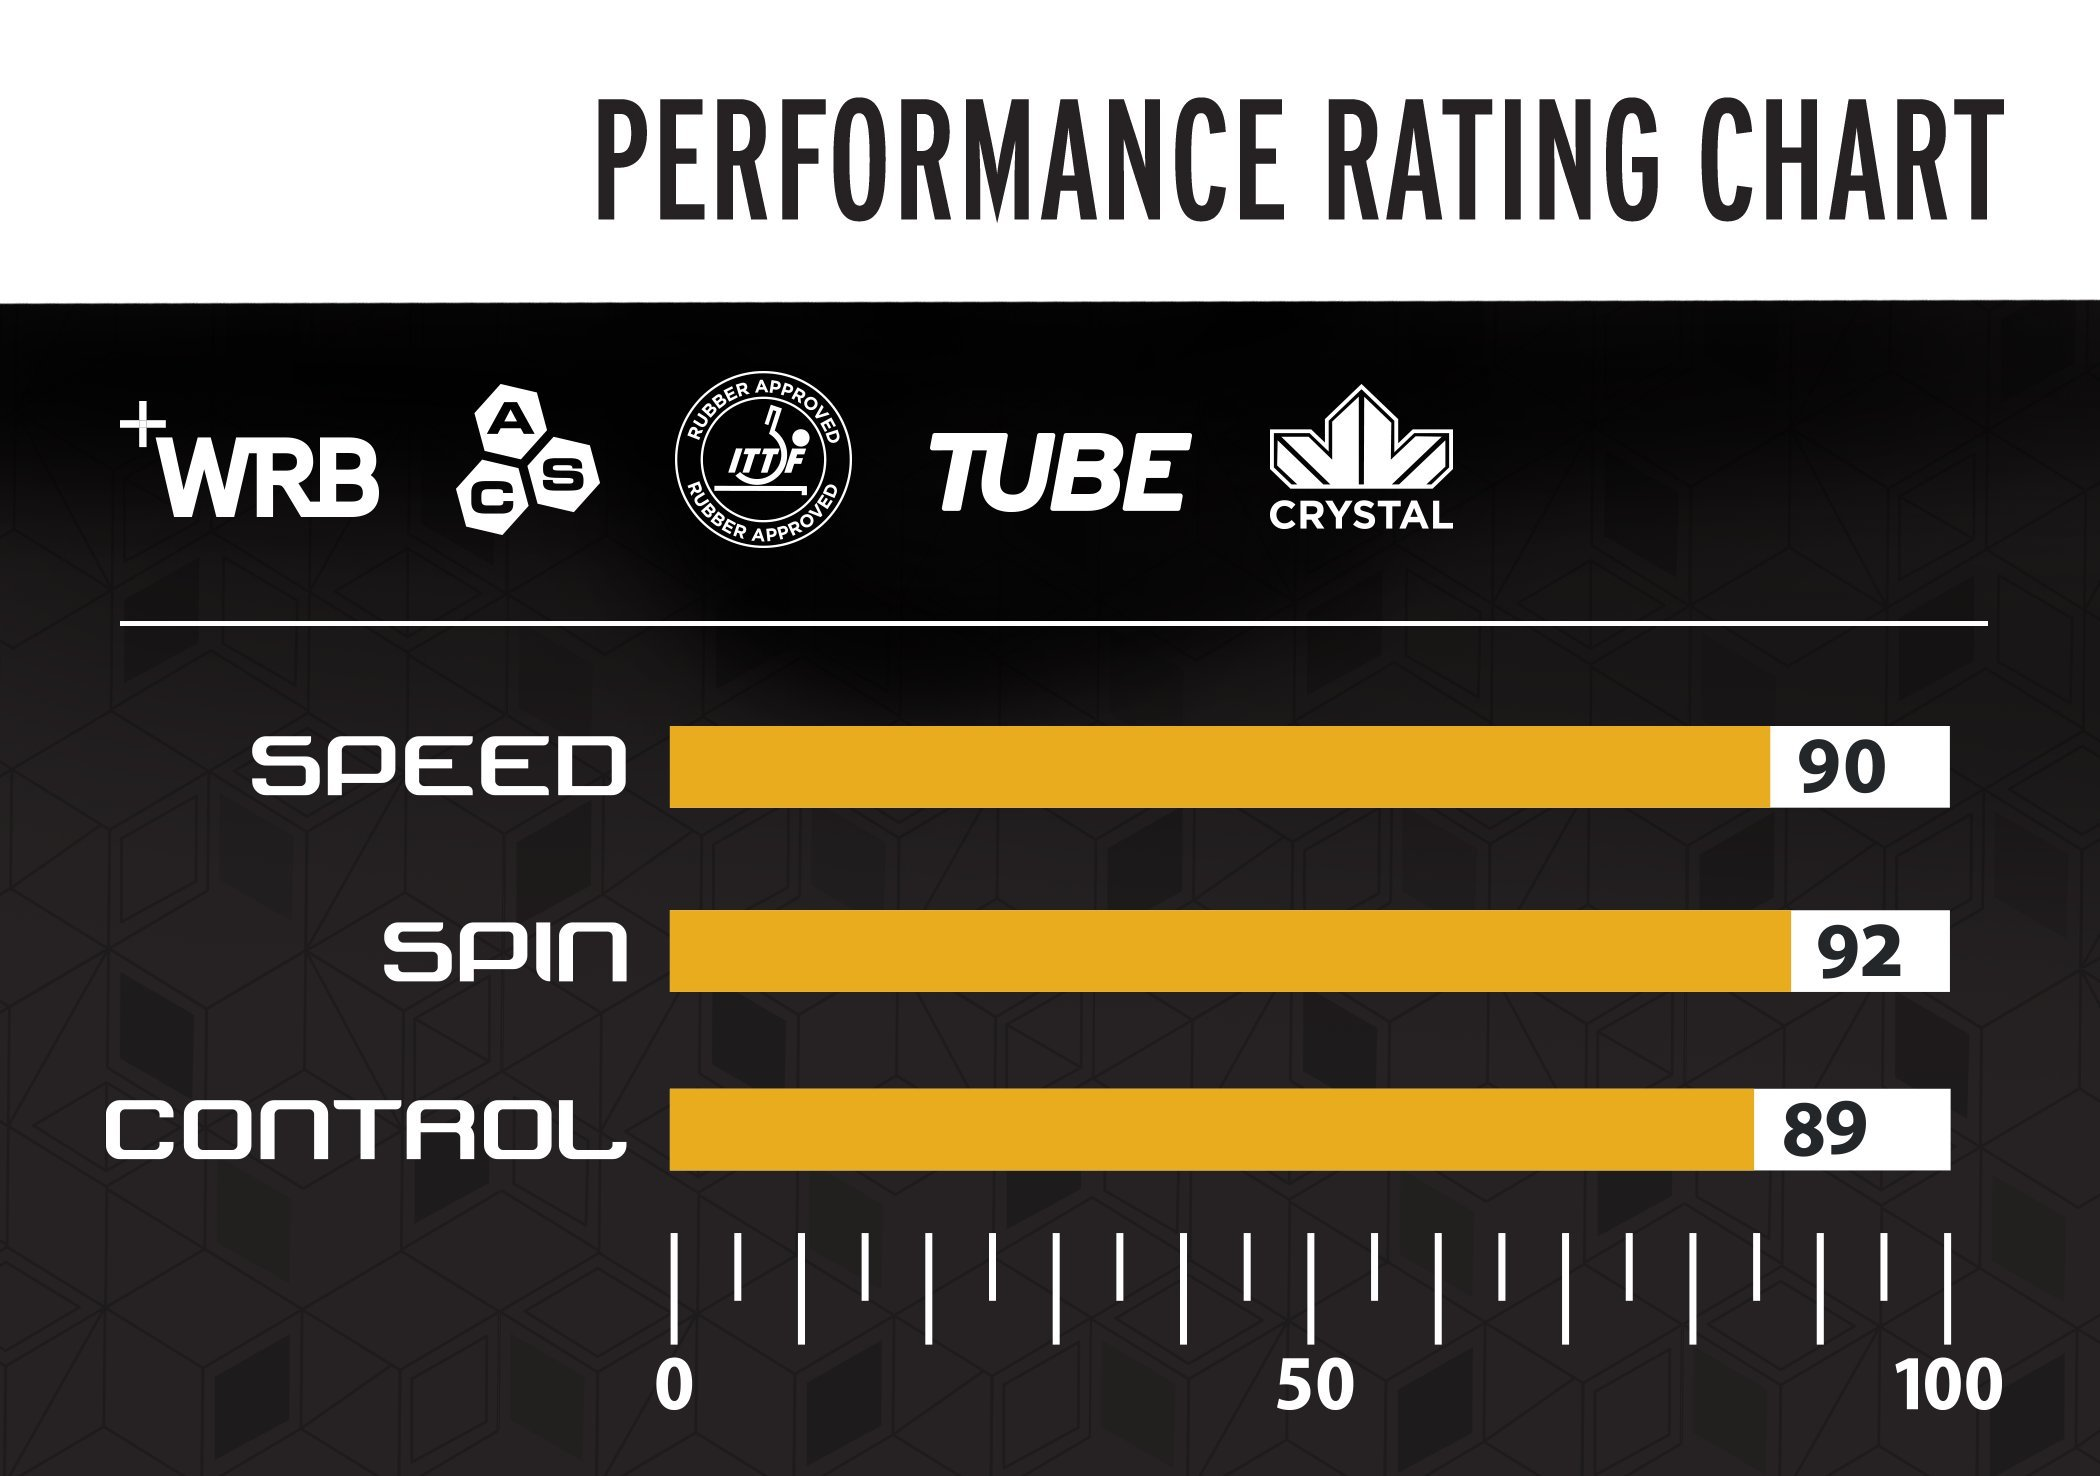 Stiga Supreme Performance Level Table Tennis Racket Made With Ittf Rackets Diagram Approved Rubber For Tournament Play Features Acs Control And Speed T1270